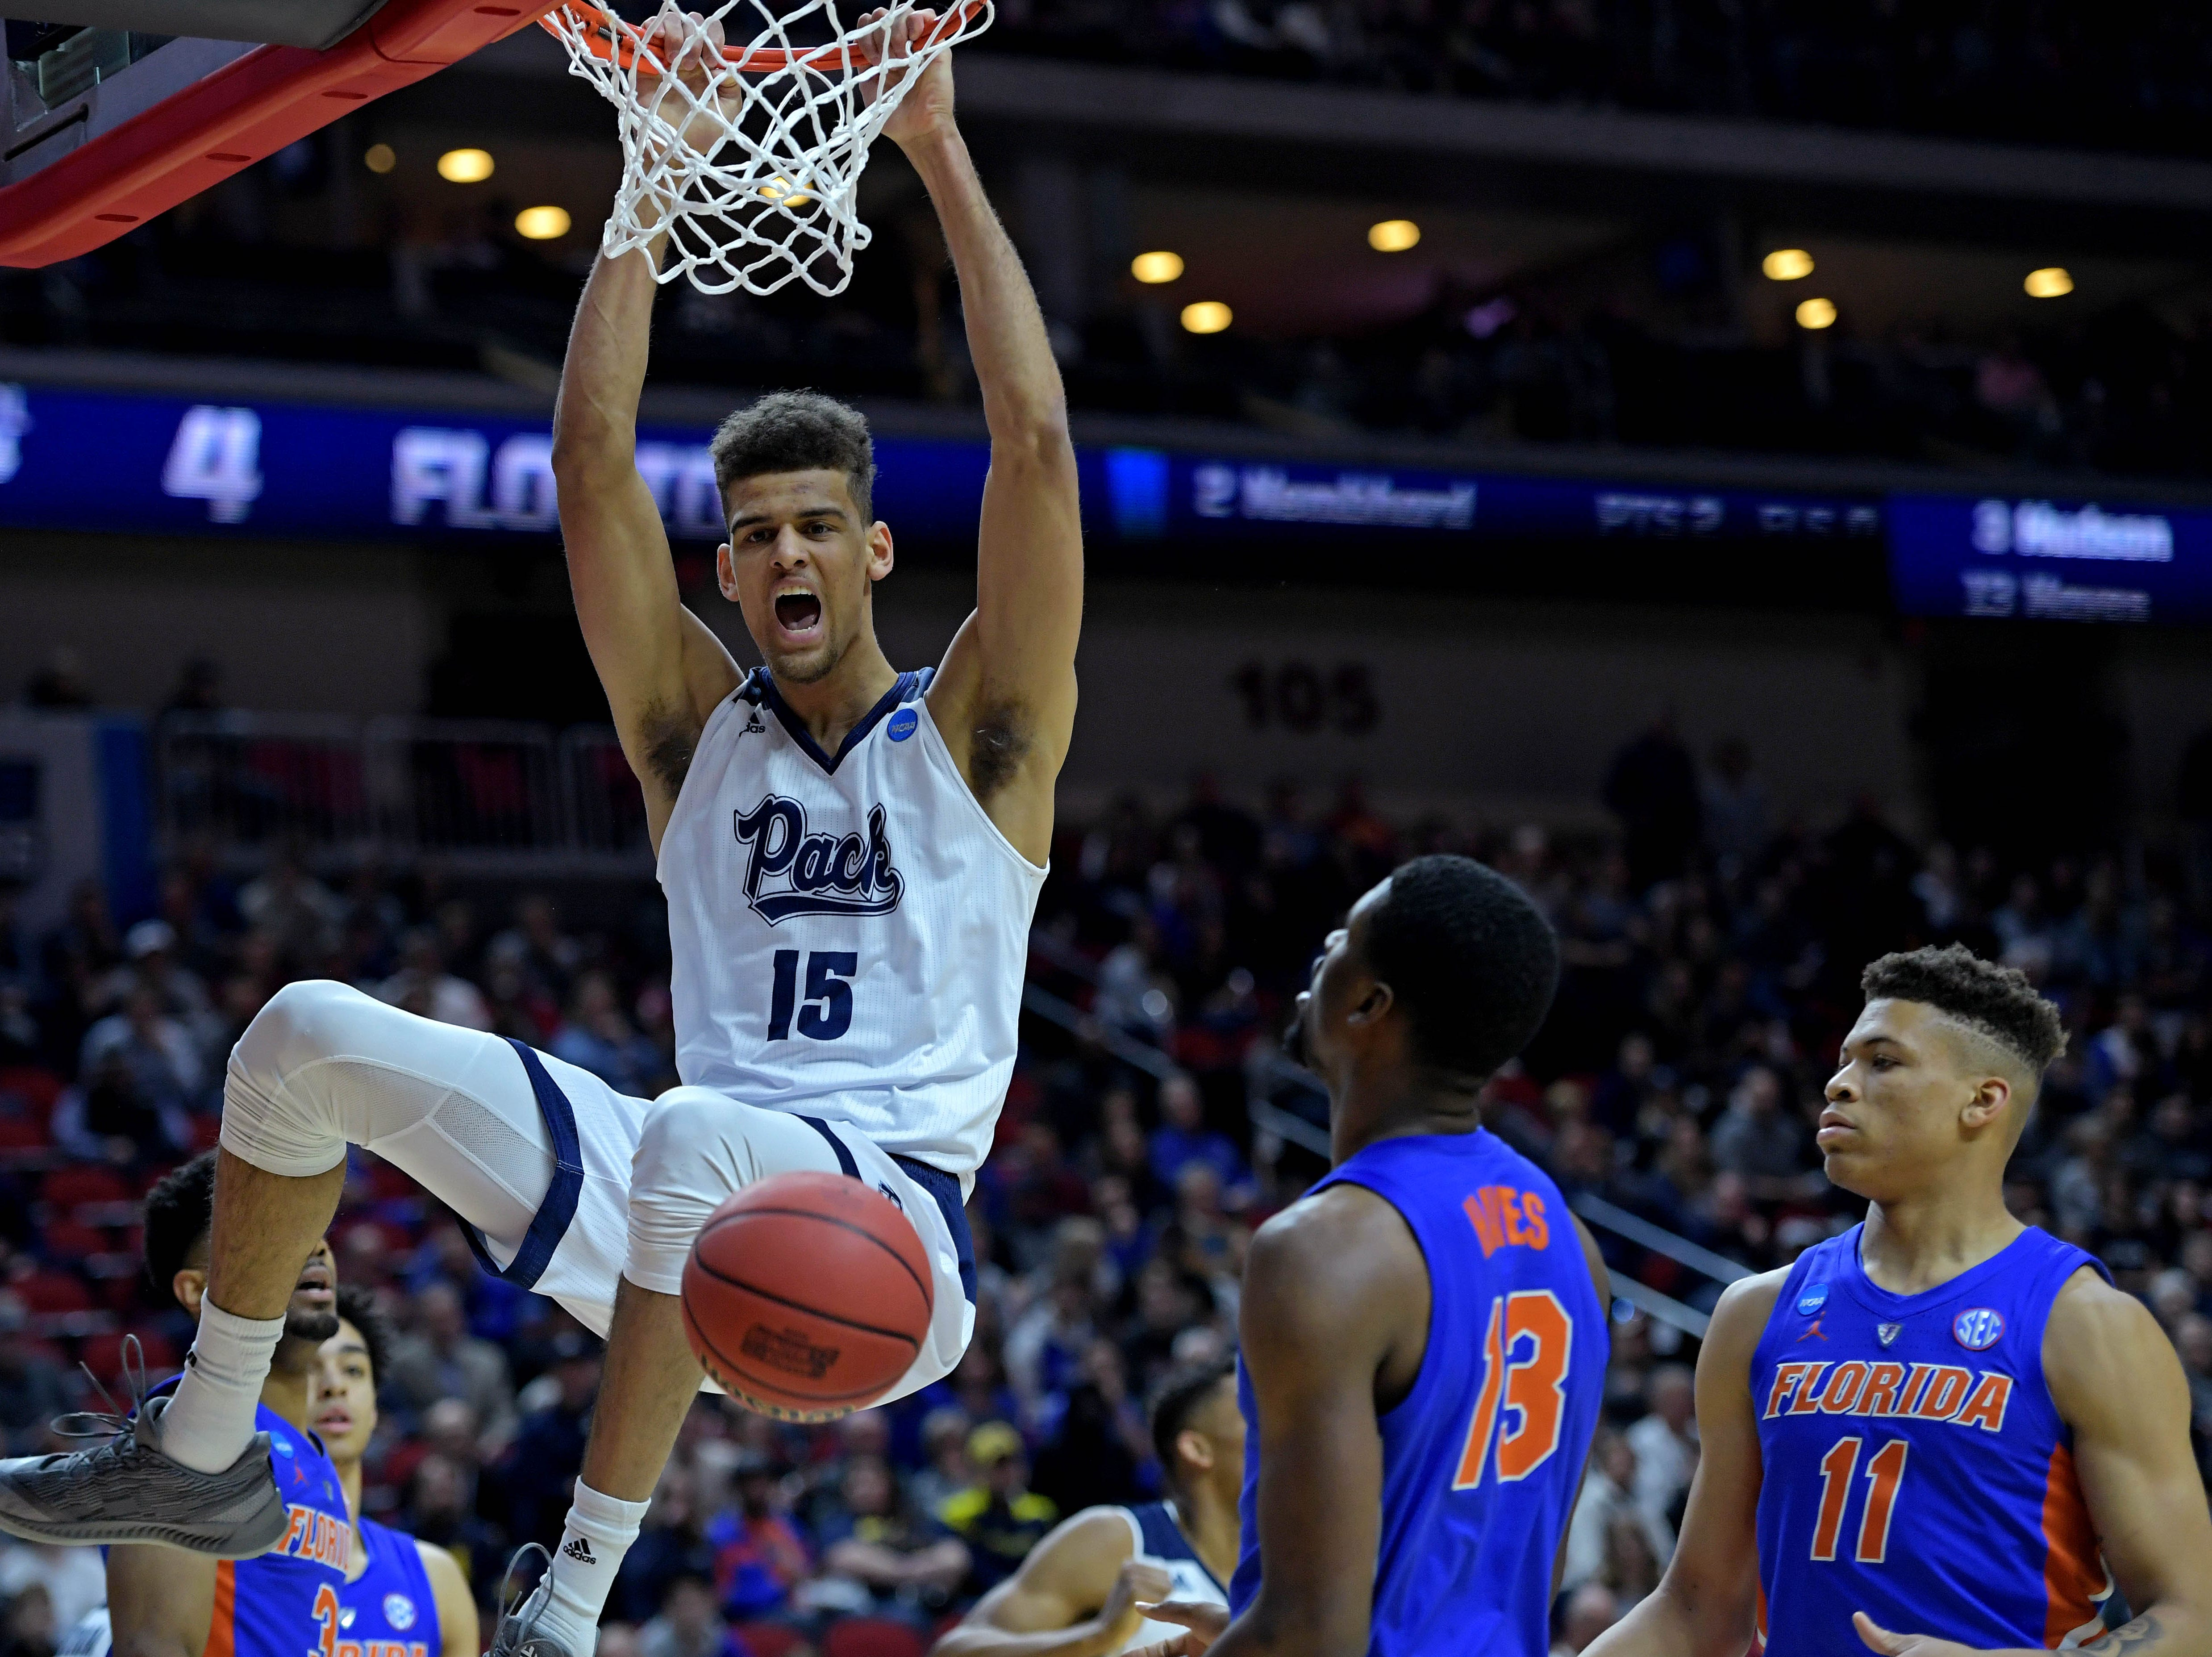 Mar 21, 2019; Des Moines, IA, United States; Nevada Wolf Pack forward Trey Porter (15) dunks the ball against Florida Gators forward Keyontae Johnson (11) during the second half in the first round of the 2019 NCAA Tournament at Wells Fargo Arena. Mandatory Credit: Steven Branscombe-USA TODAY Sports